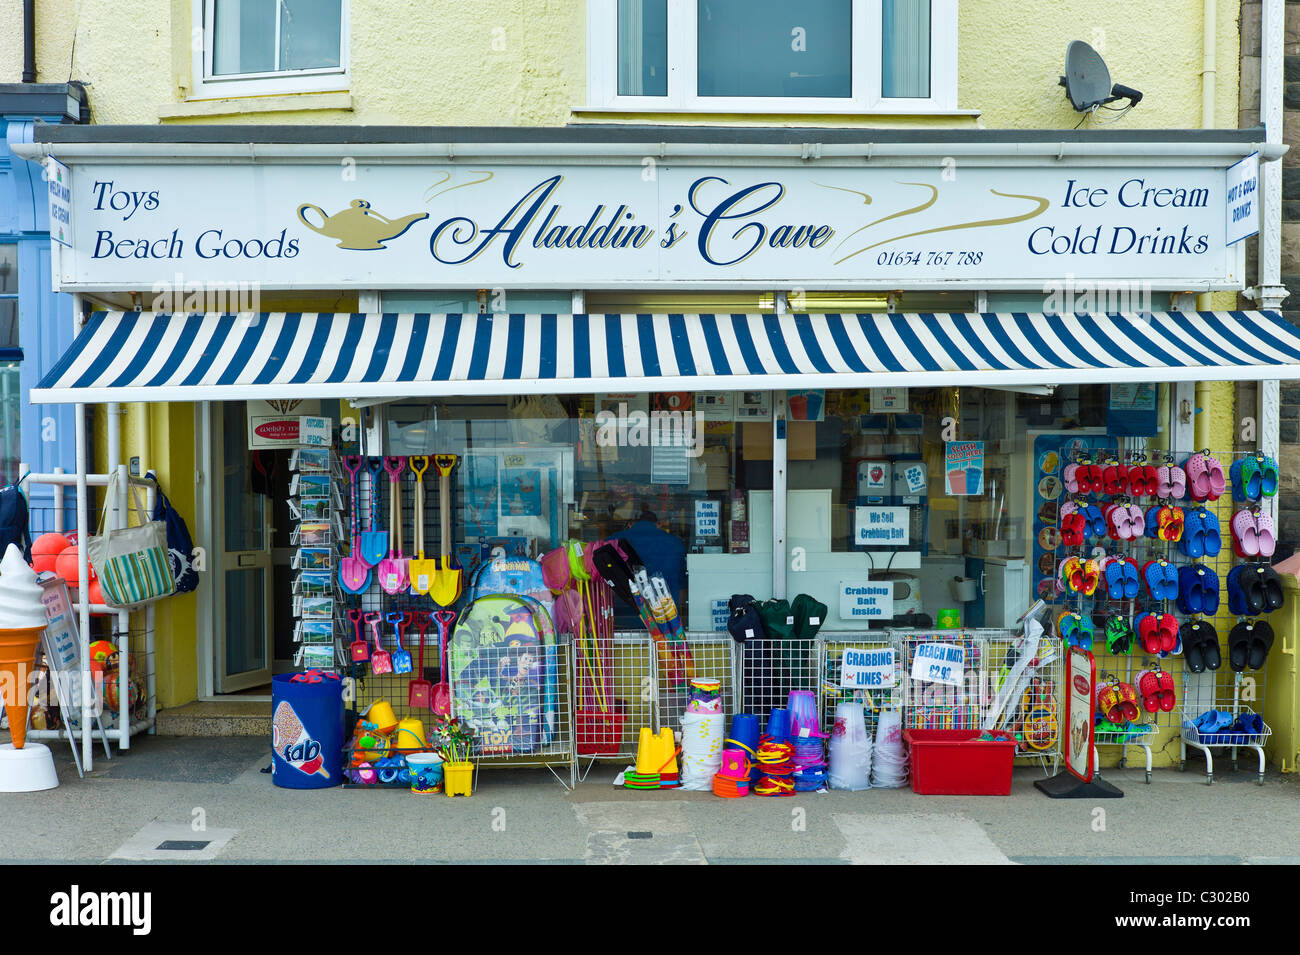 Aladdin's Cave general store selling seaside products and souvenirs in Aberdyfi, Aberdovey, Snowdonia, Wales - Stock Image